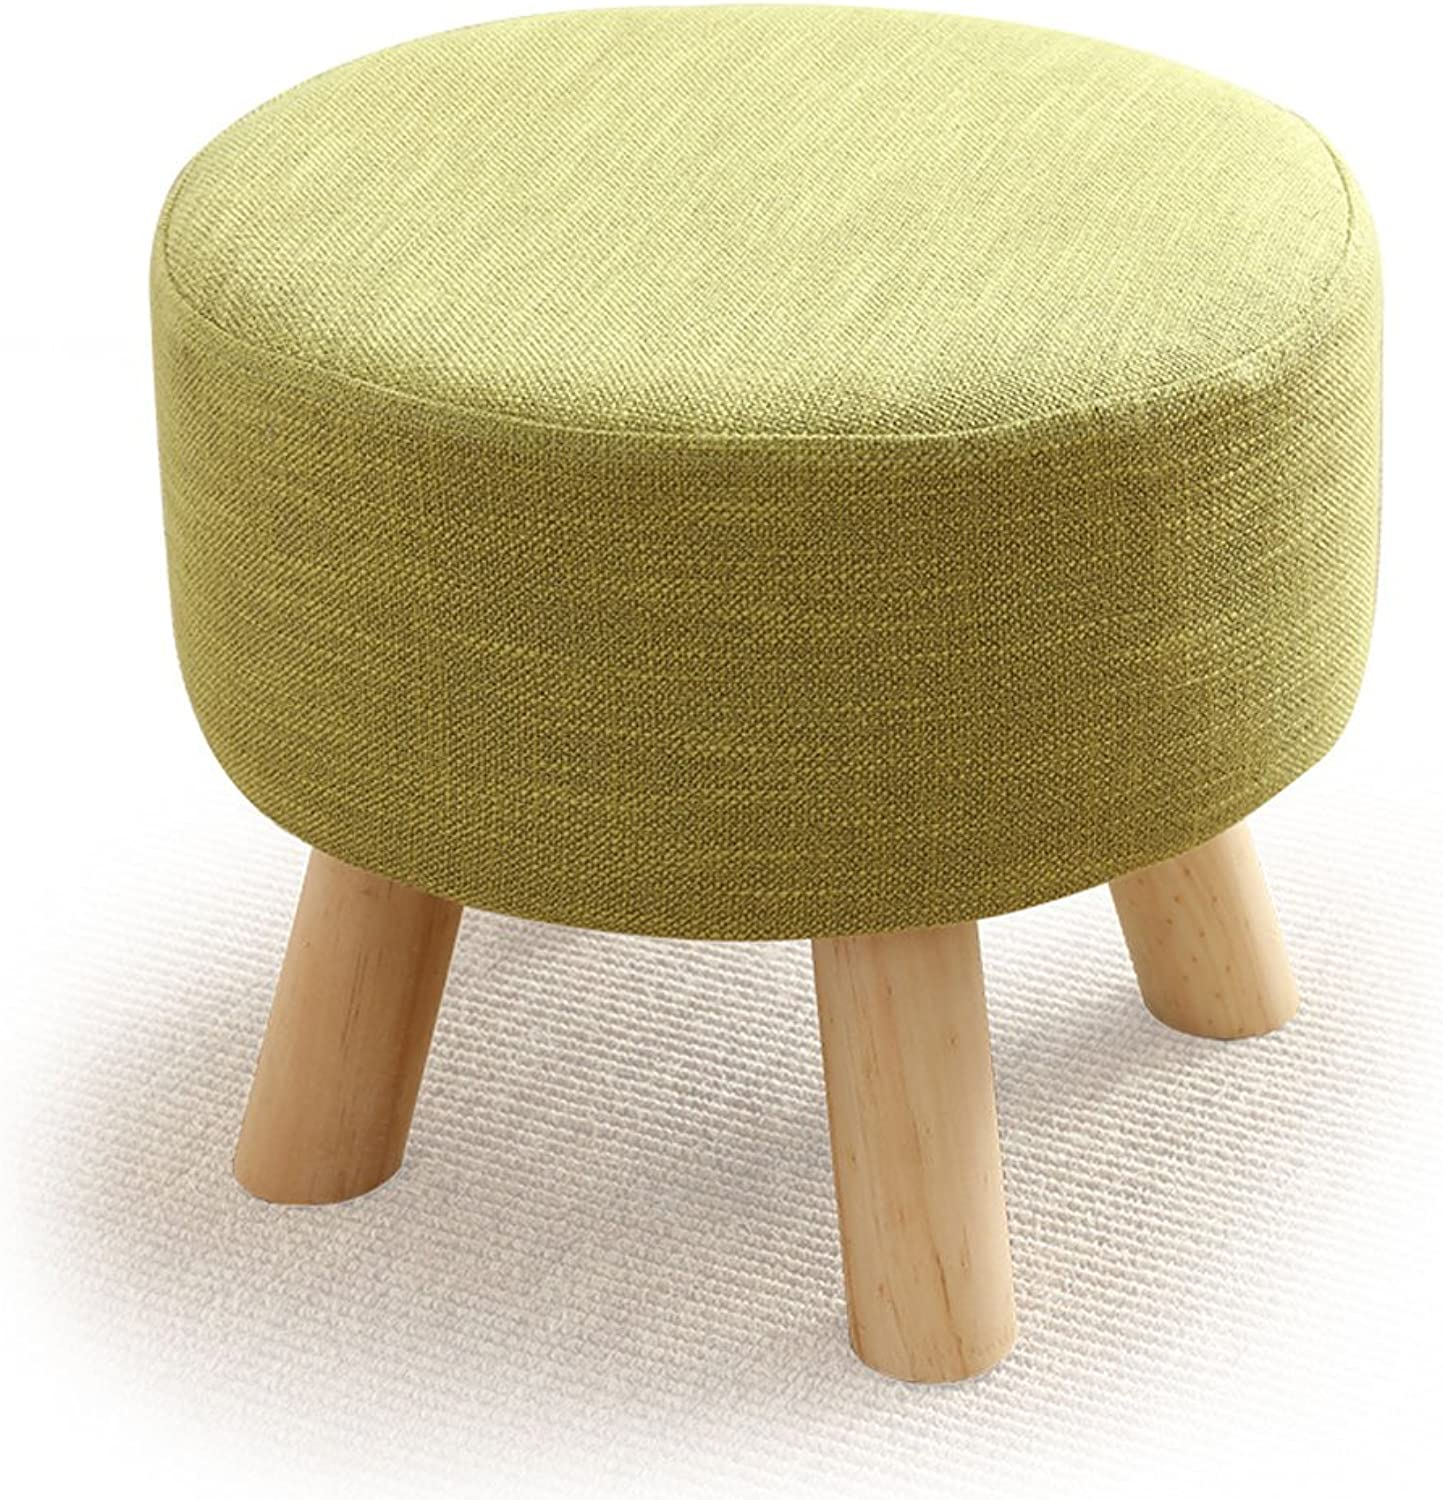 Small Stool Round Short Coffee Table Stool Sofa Adult Living Room Household Fashion Creative Solid Wood Stool Changing his shoes Stool (color    4)